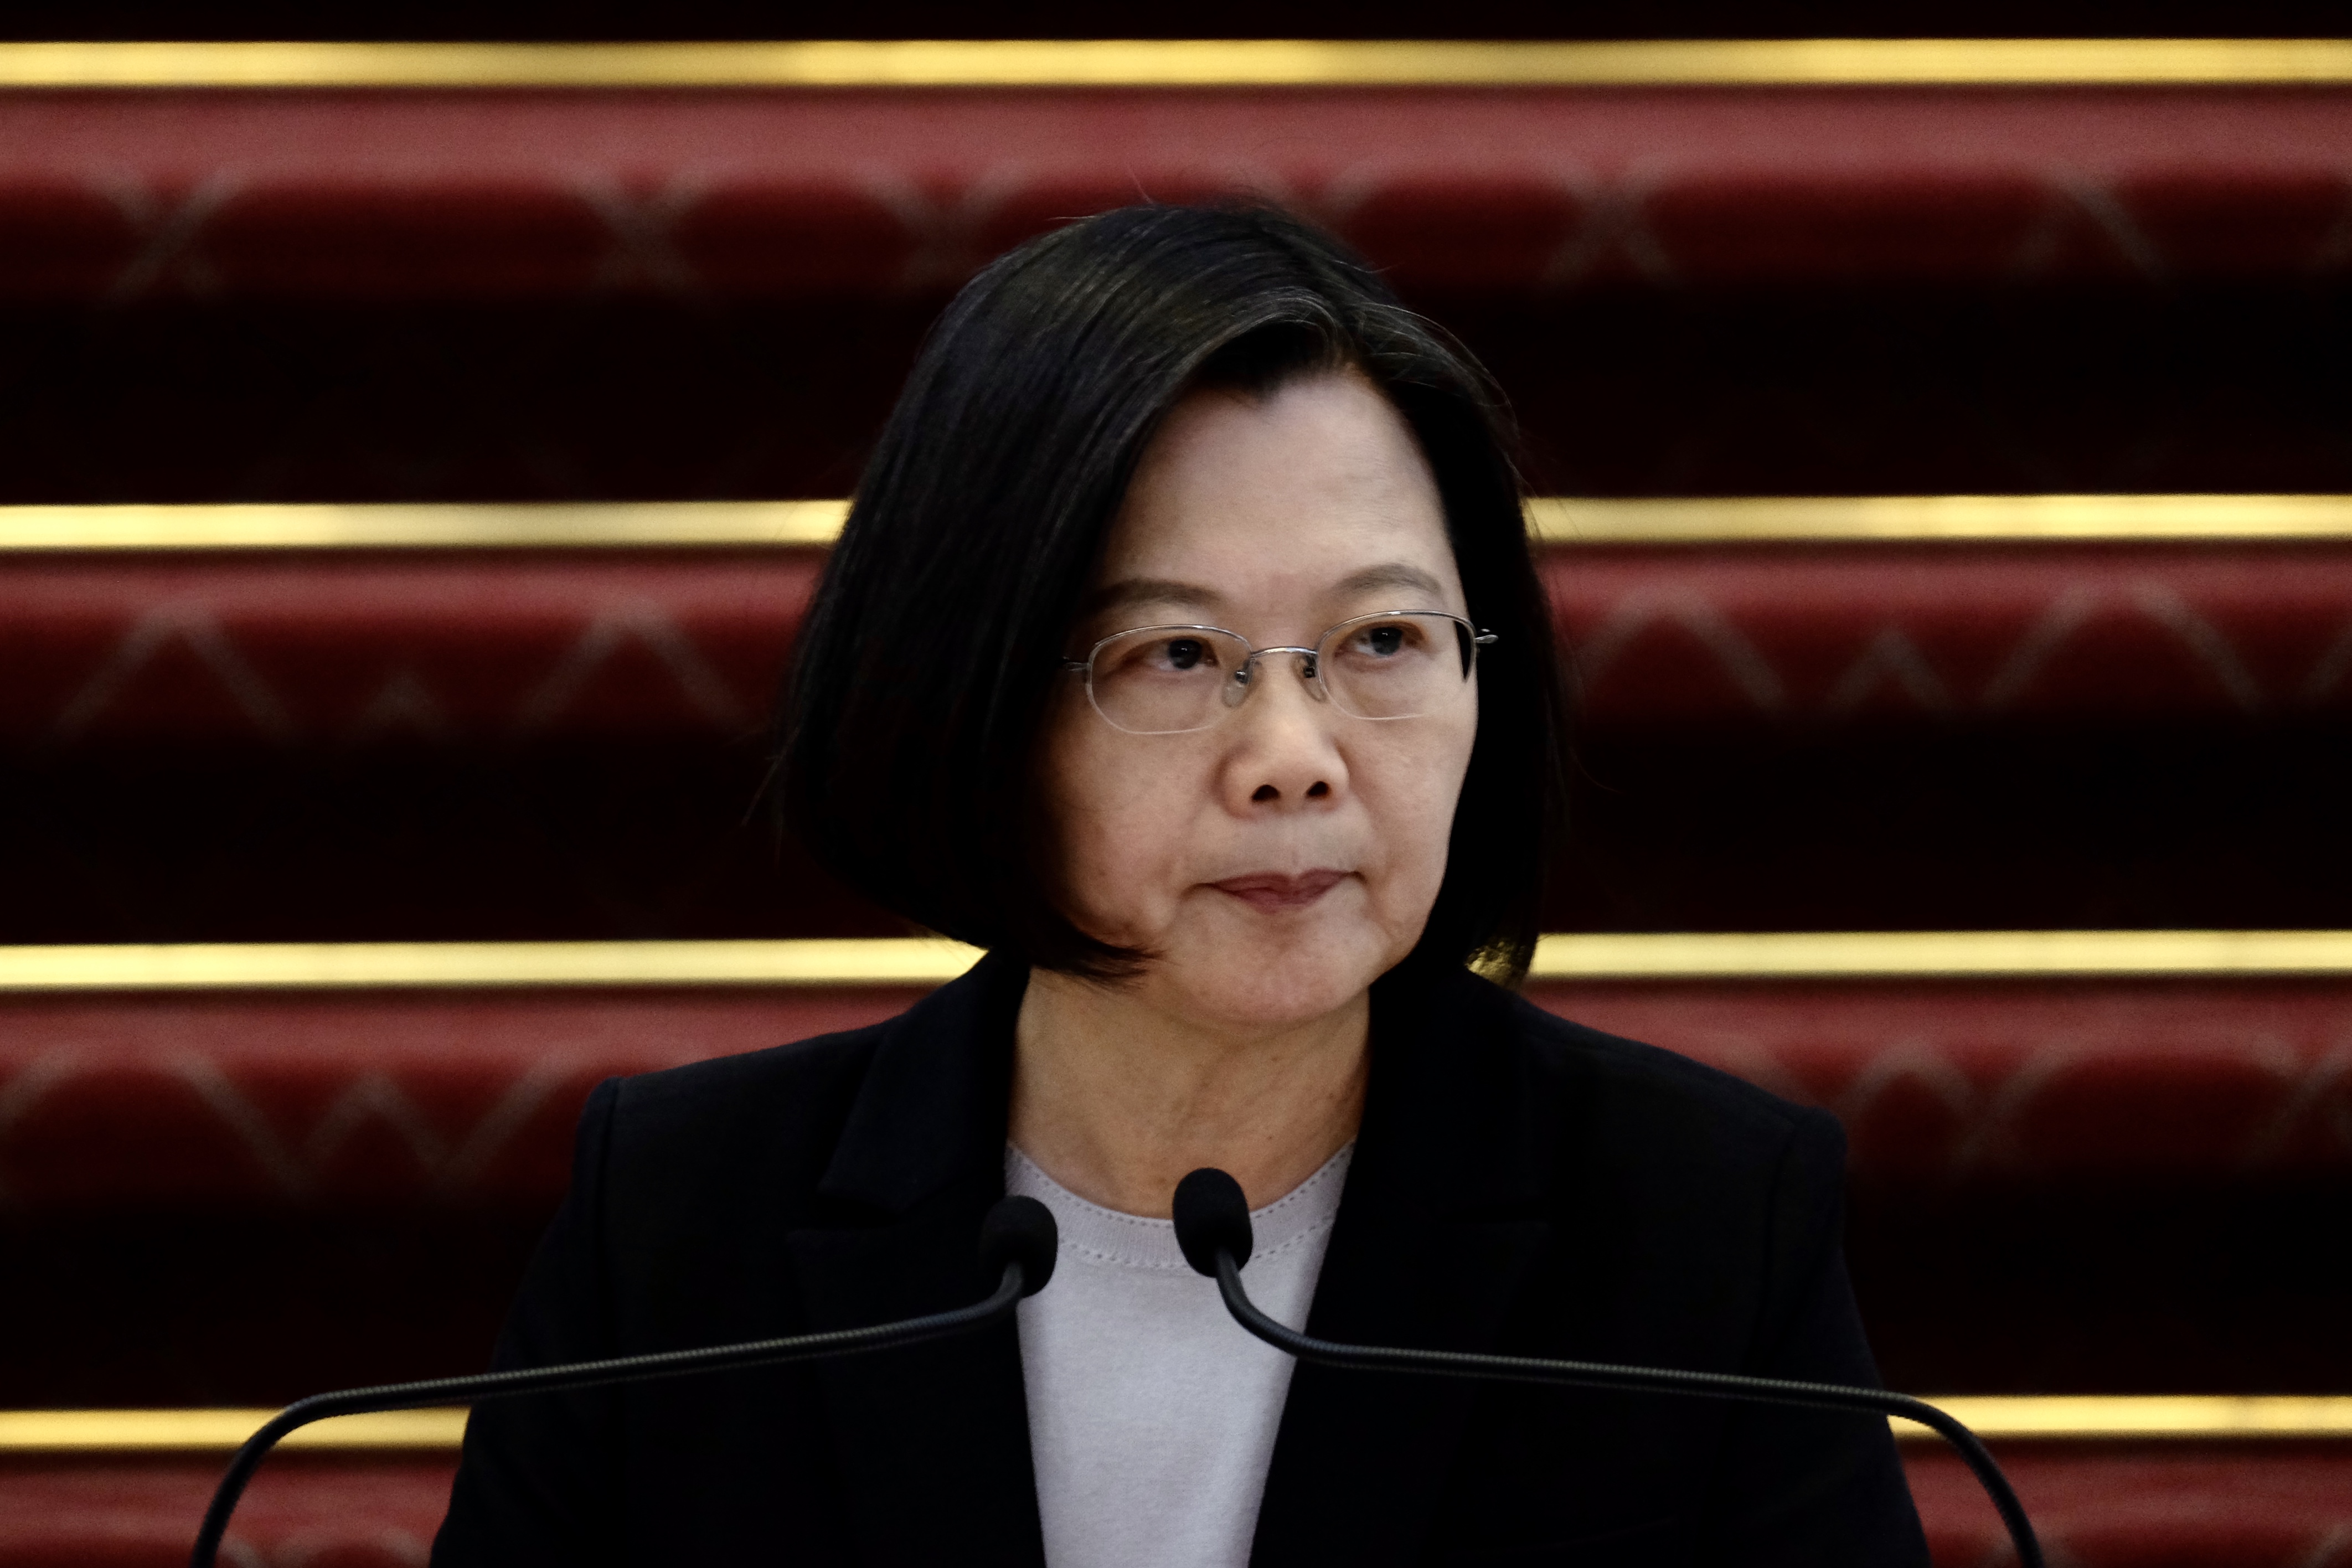 Taiwan President Tsai Ing-wen held a news conference over the outbreak.